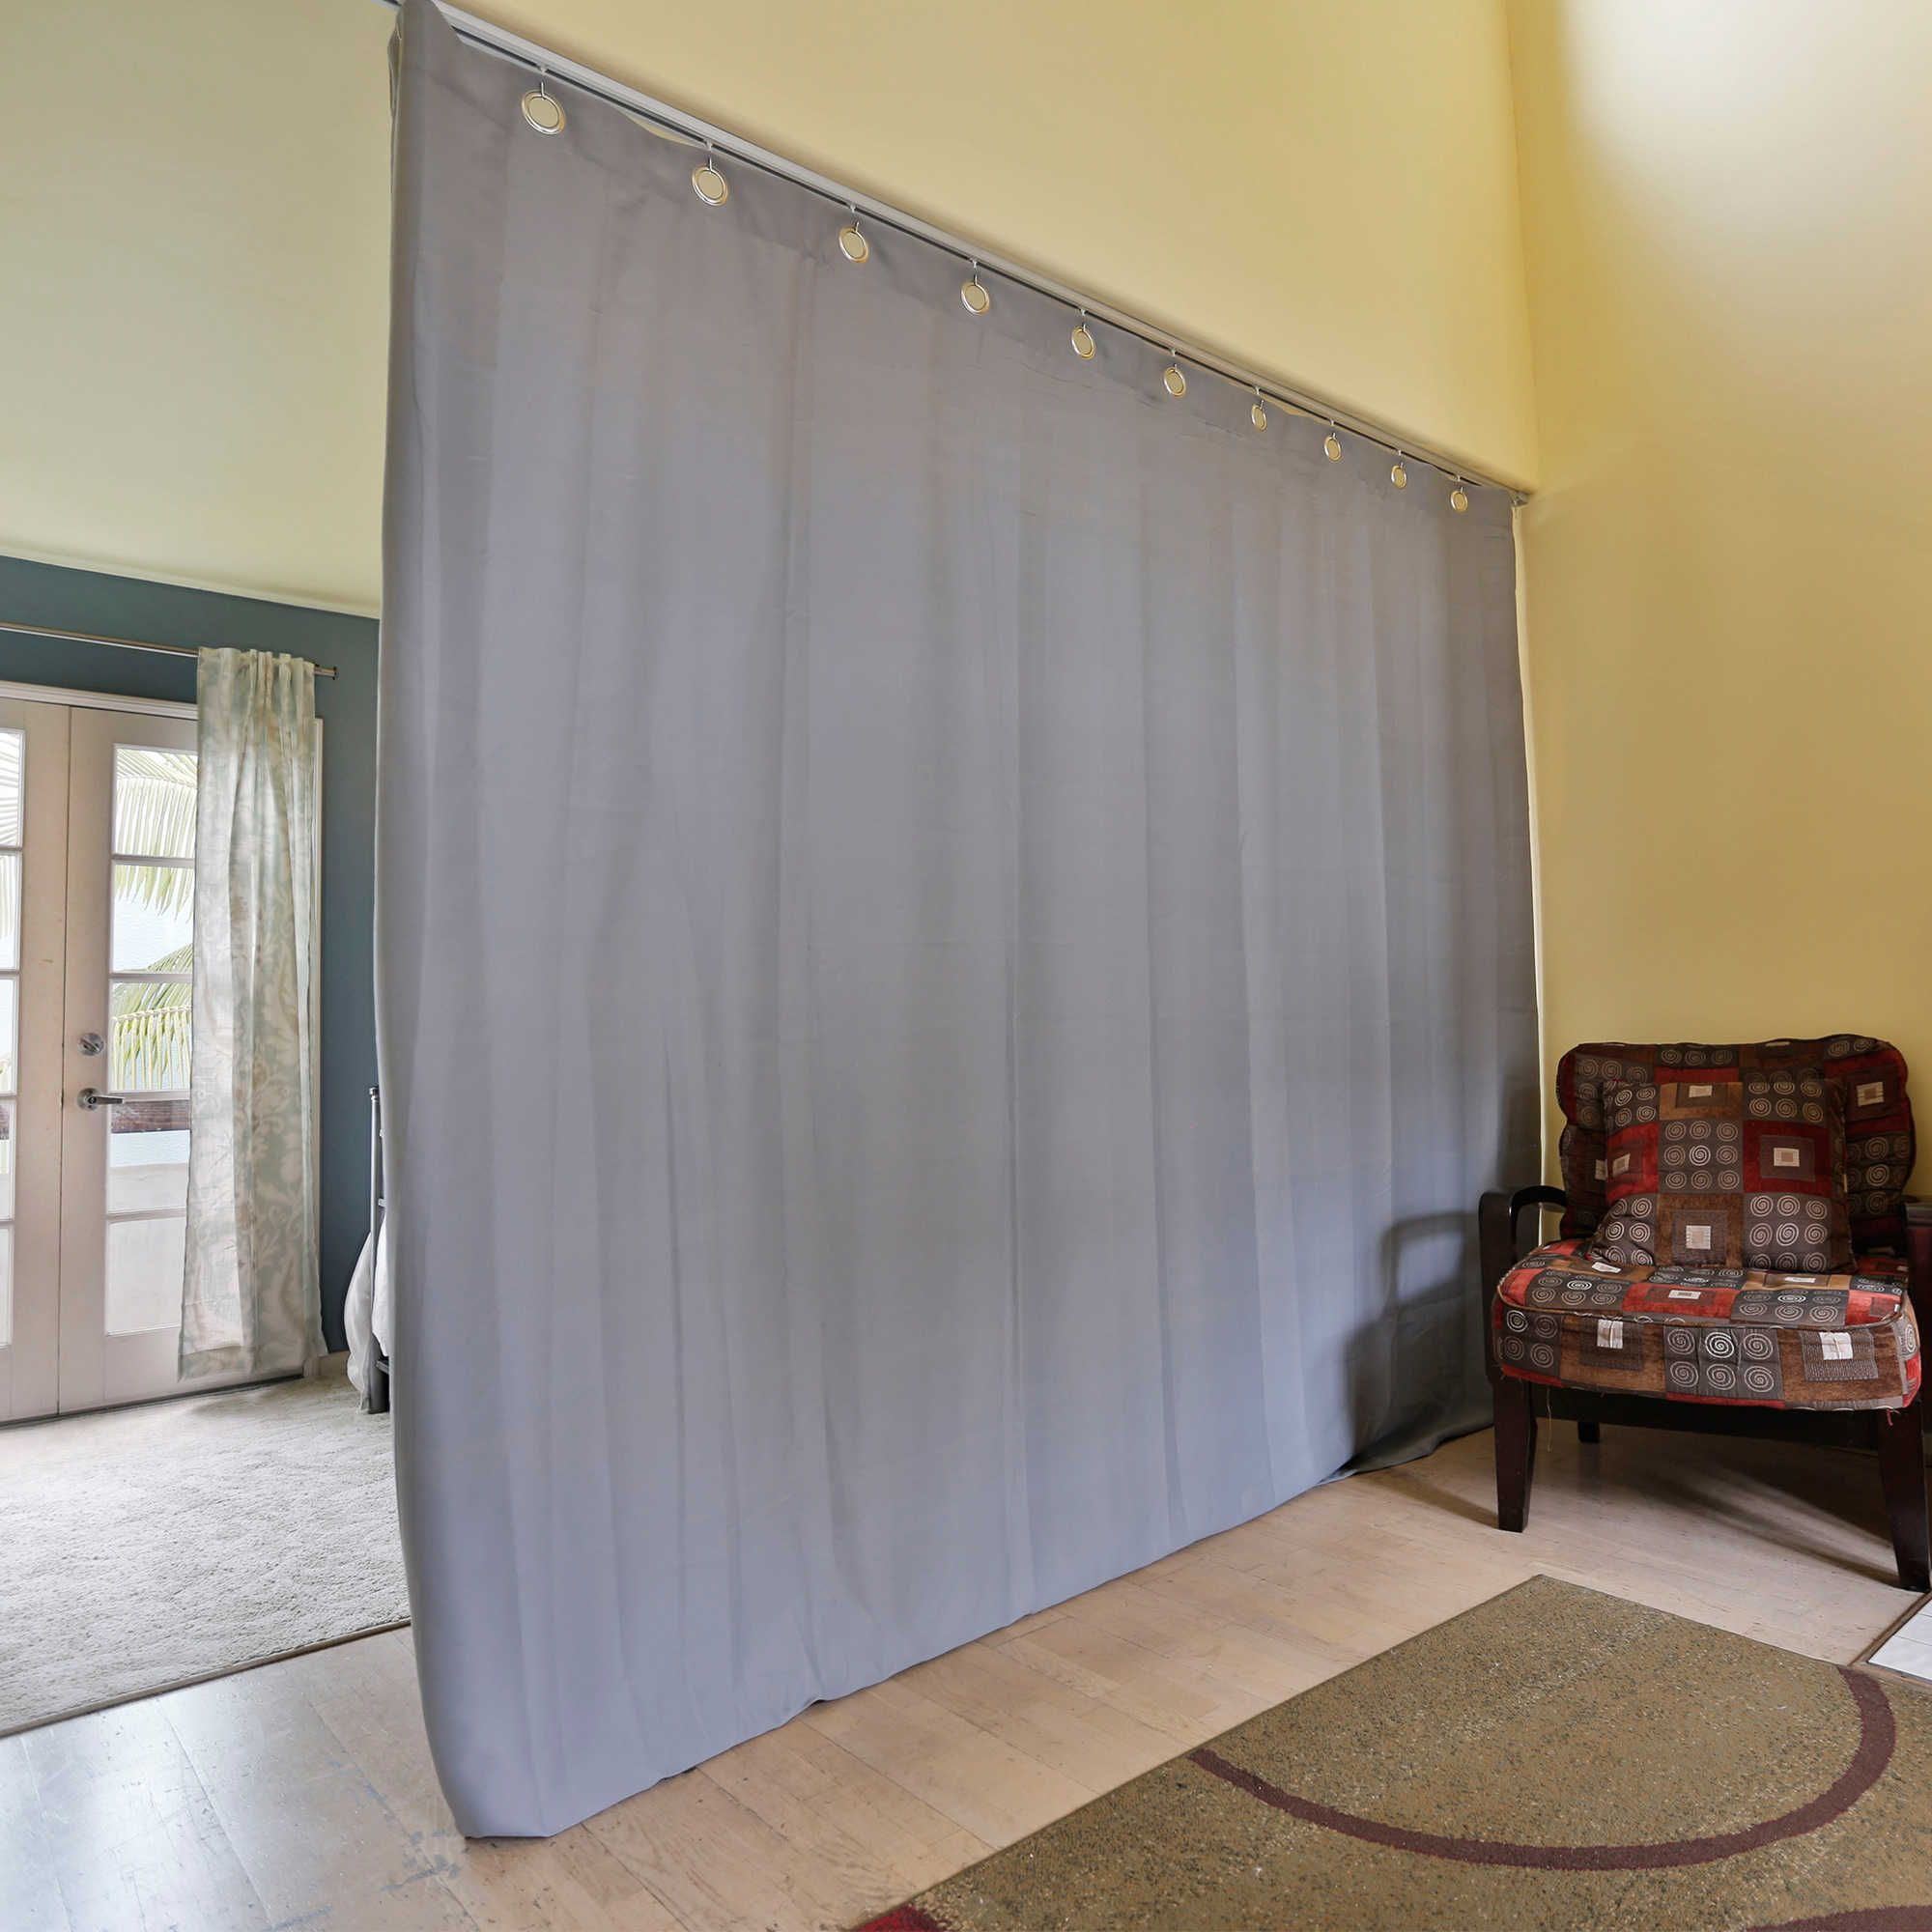 Roomdividersnow Medium Ceiling Track Room Divider Kit B With 9 Foot Curtain Panel In Grey Room Divider Curtain Hanging Room Dividers Small Room Divider